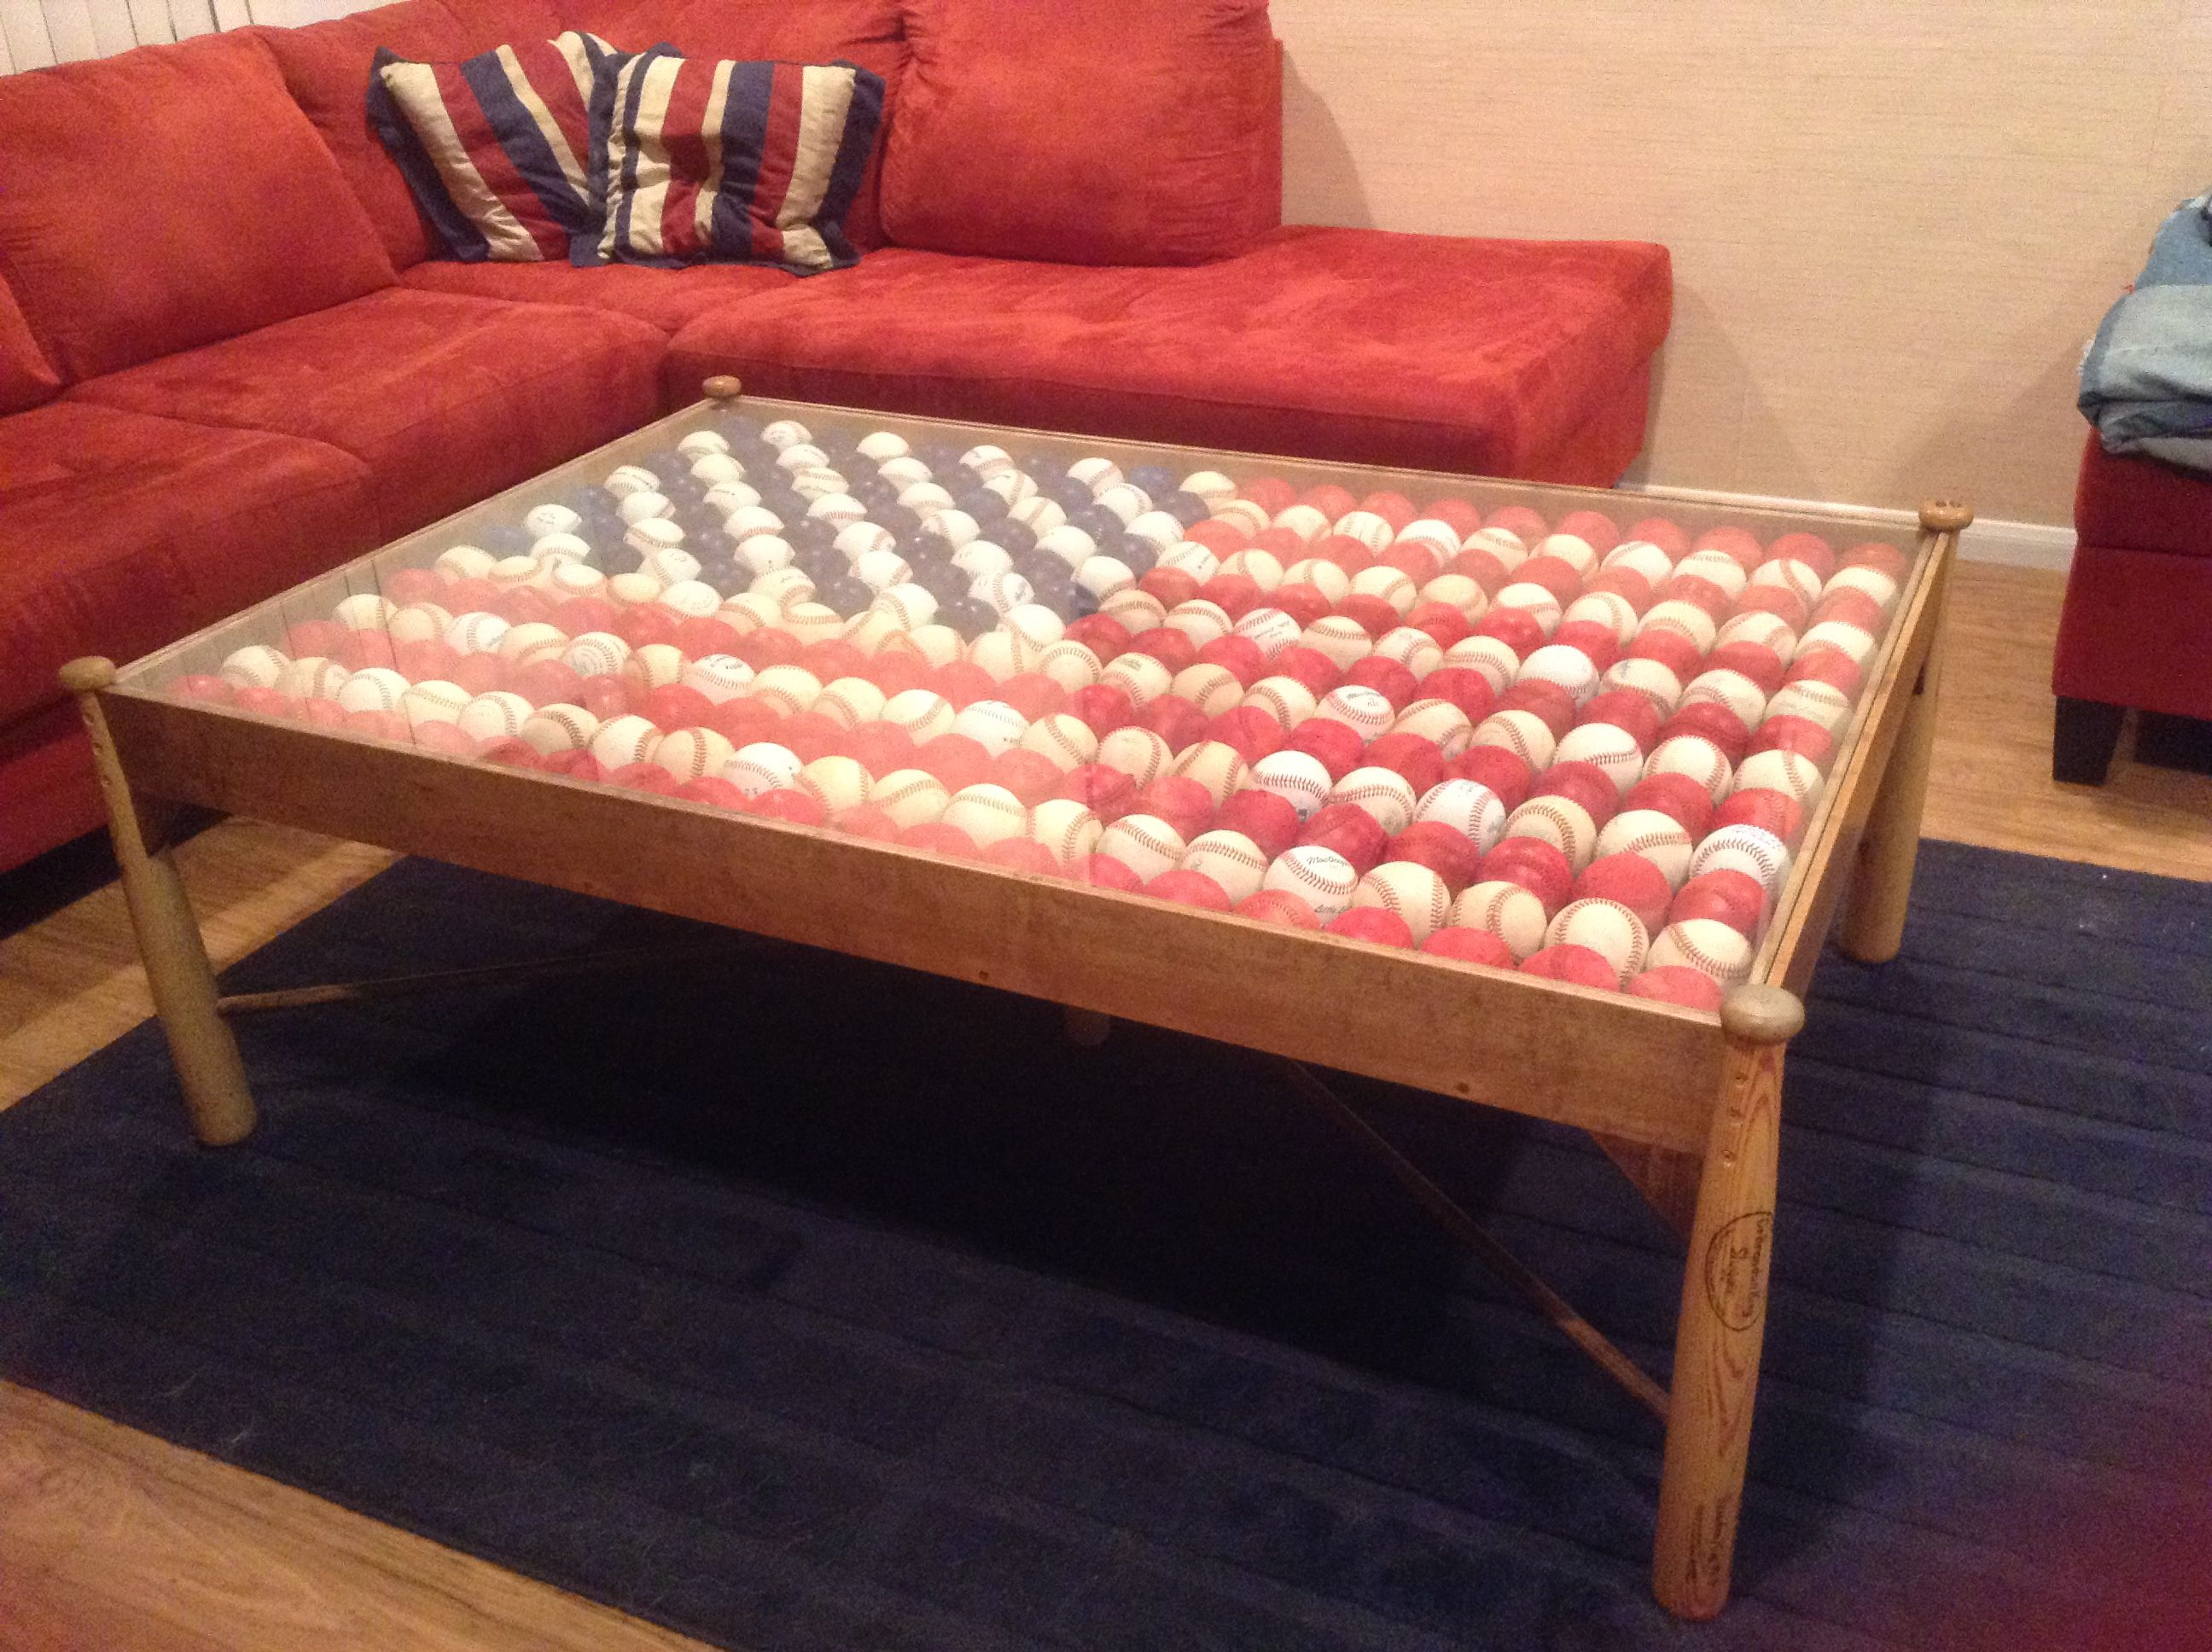 Brandan s Baseball American flag coffee table Made with baseball